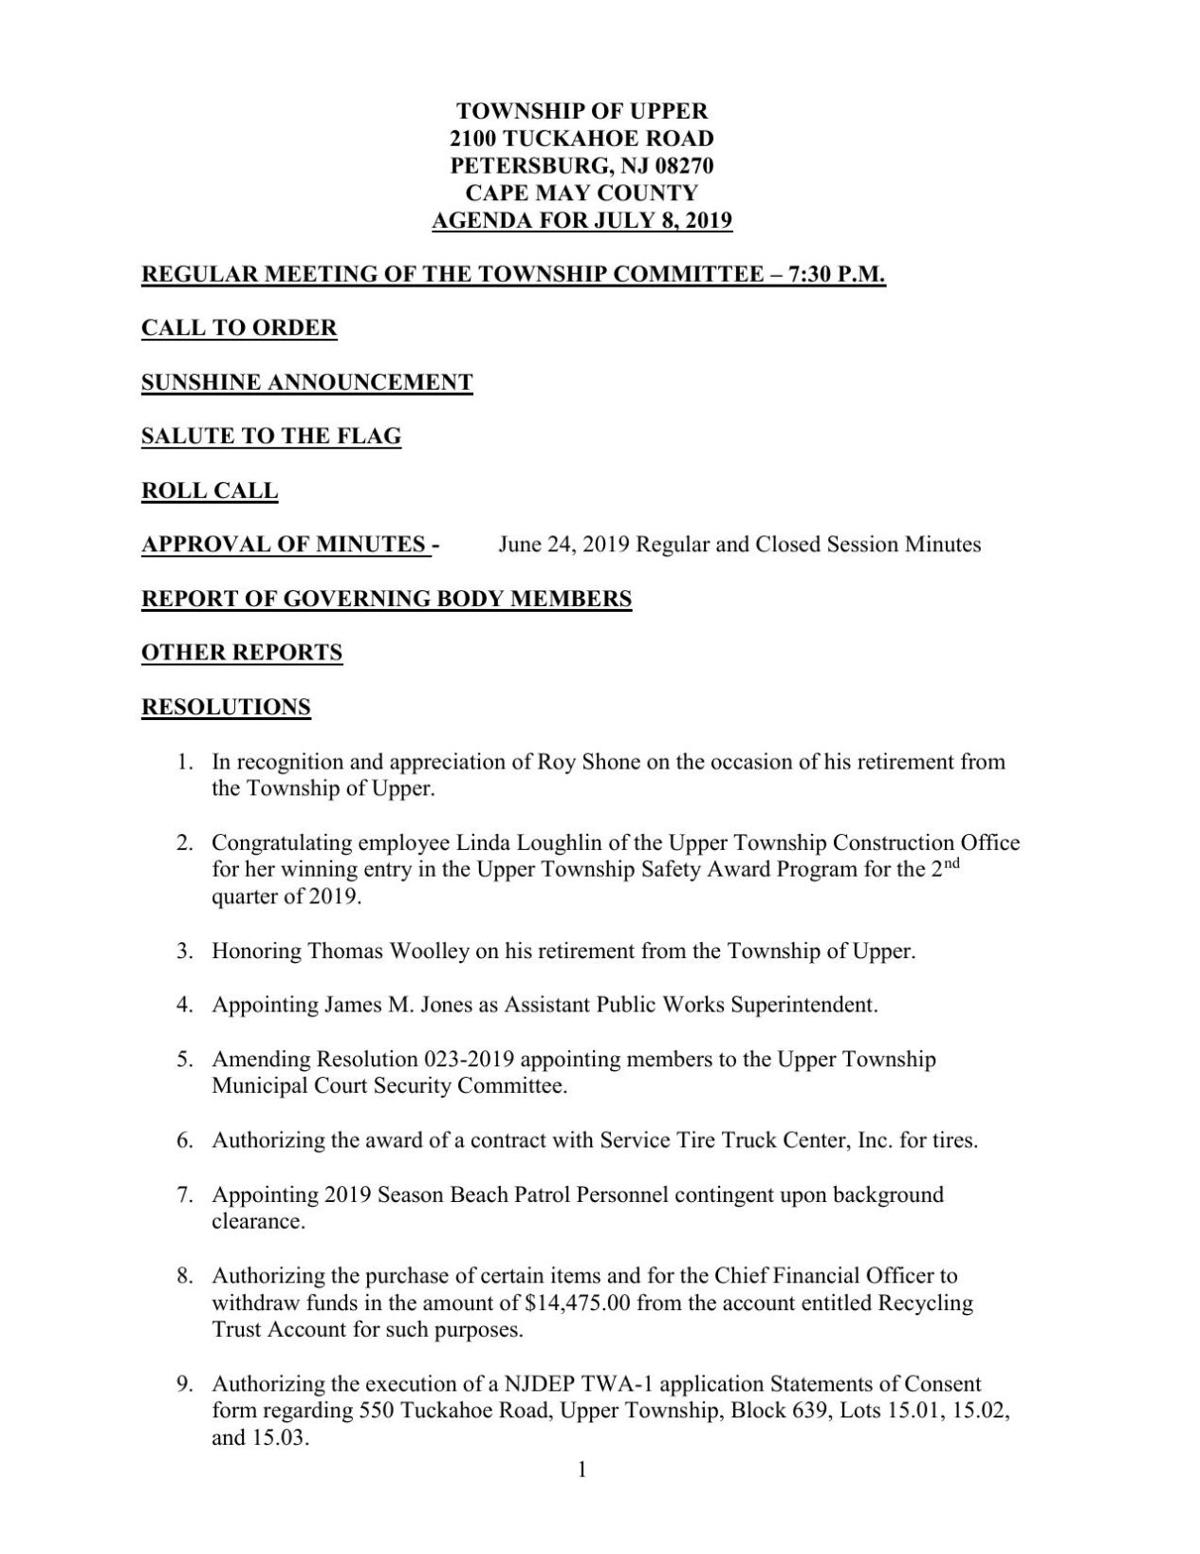 Upper Township Committee Agenda July 8, 2019